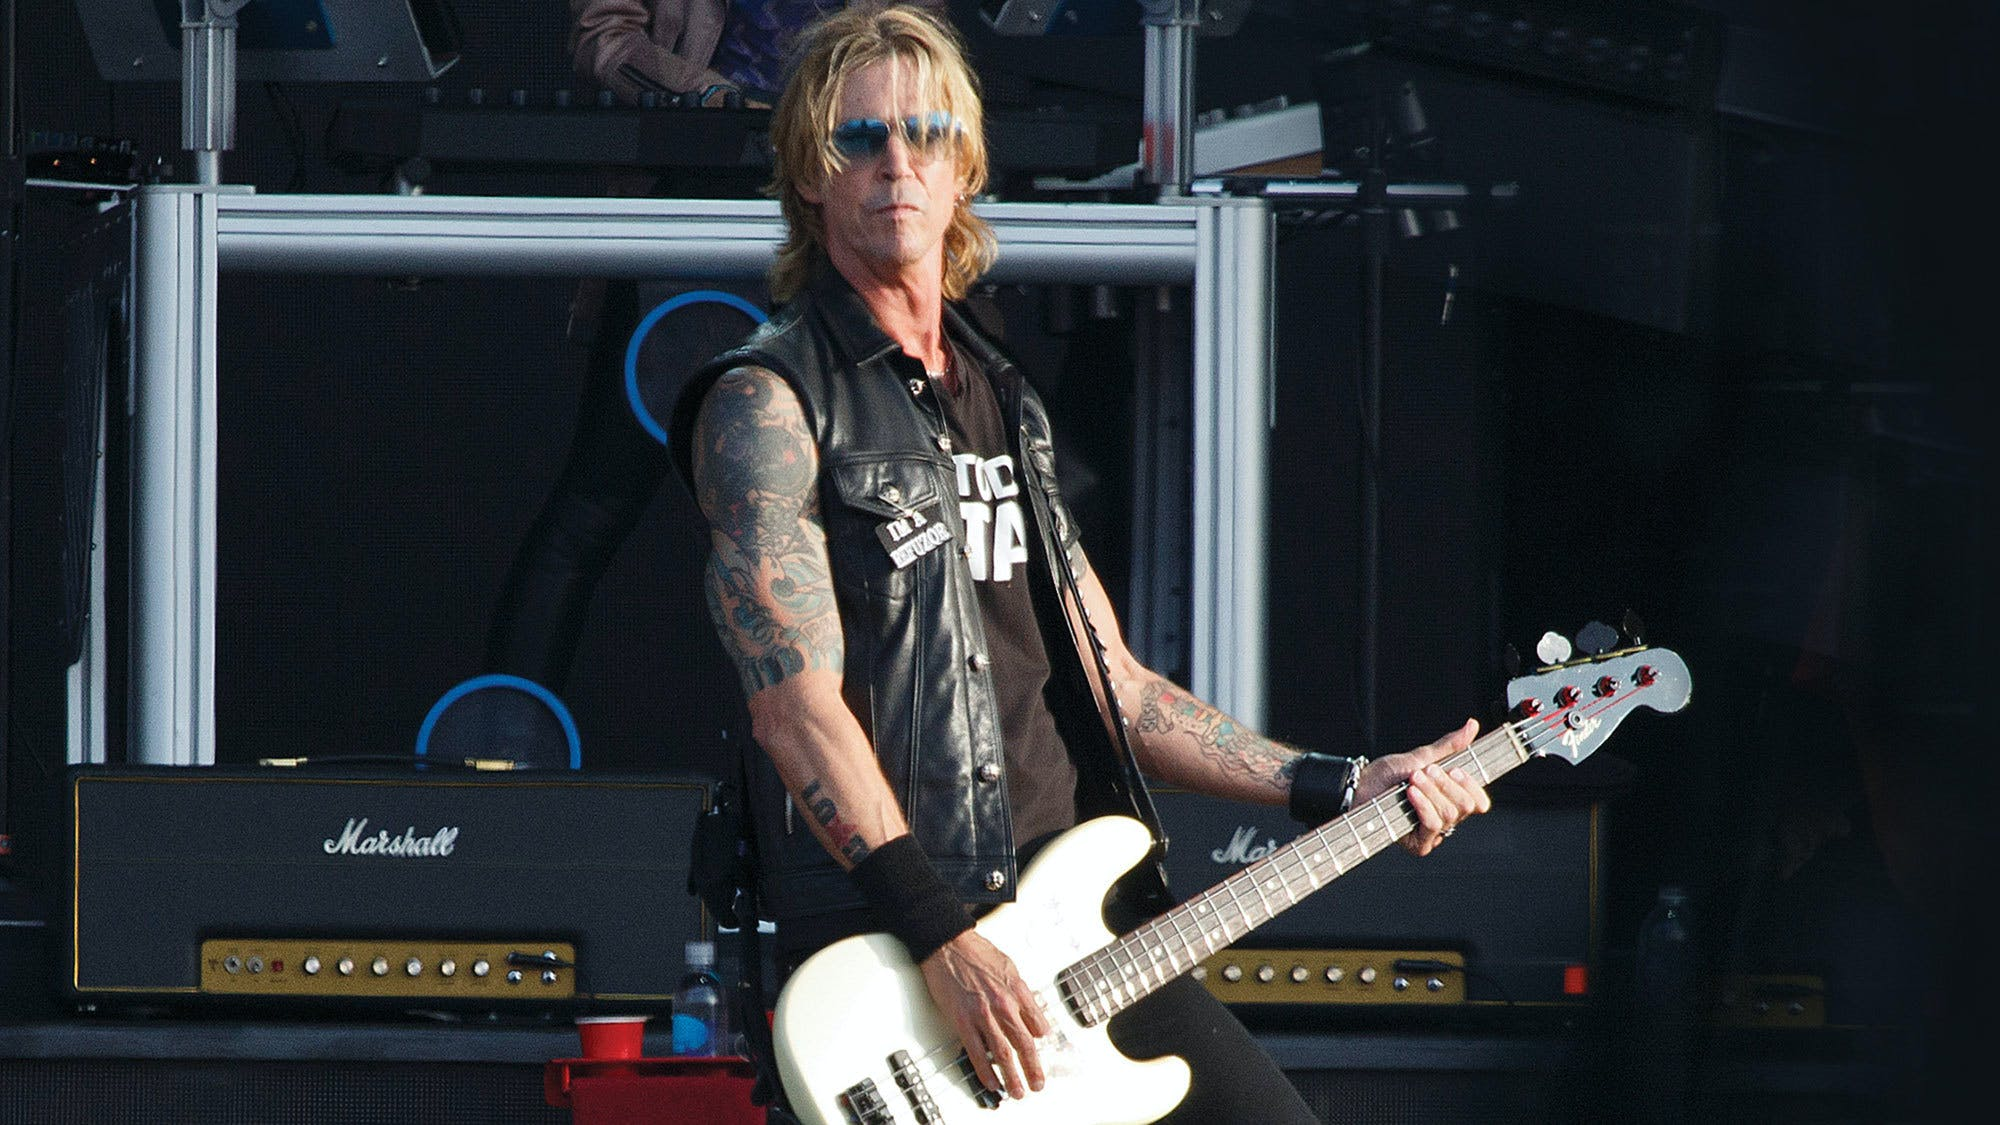 The 5 Shows That Changed Duff McKagan's Life